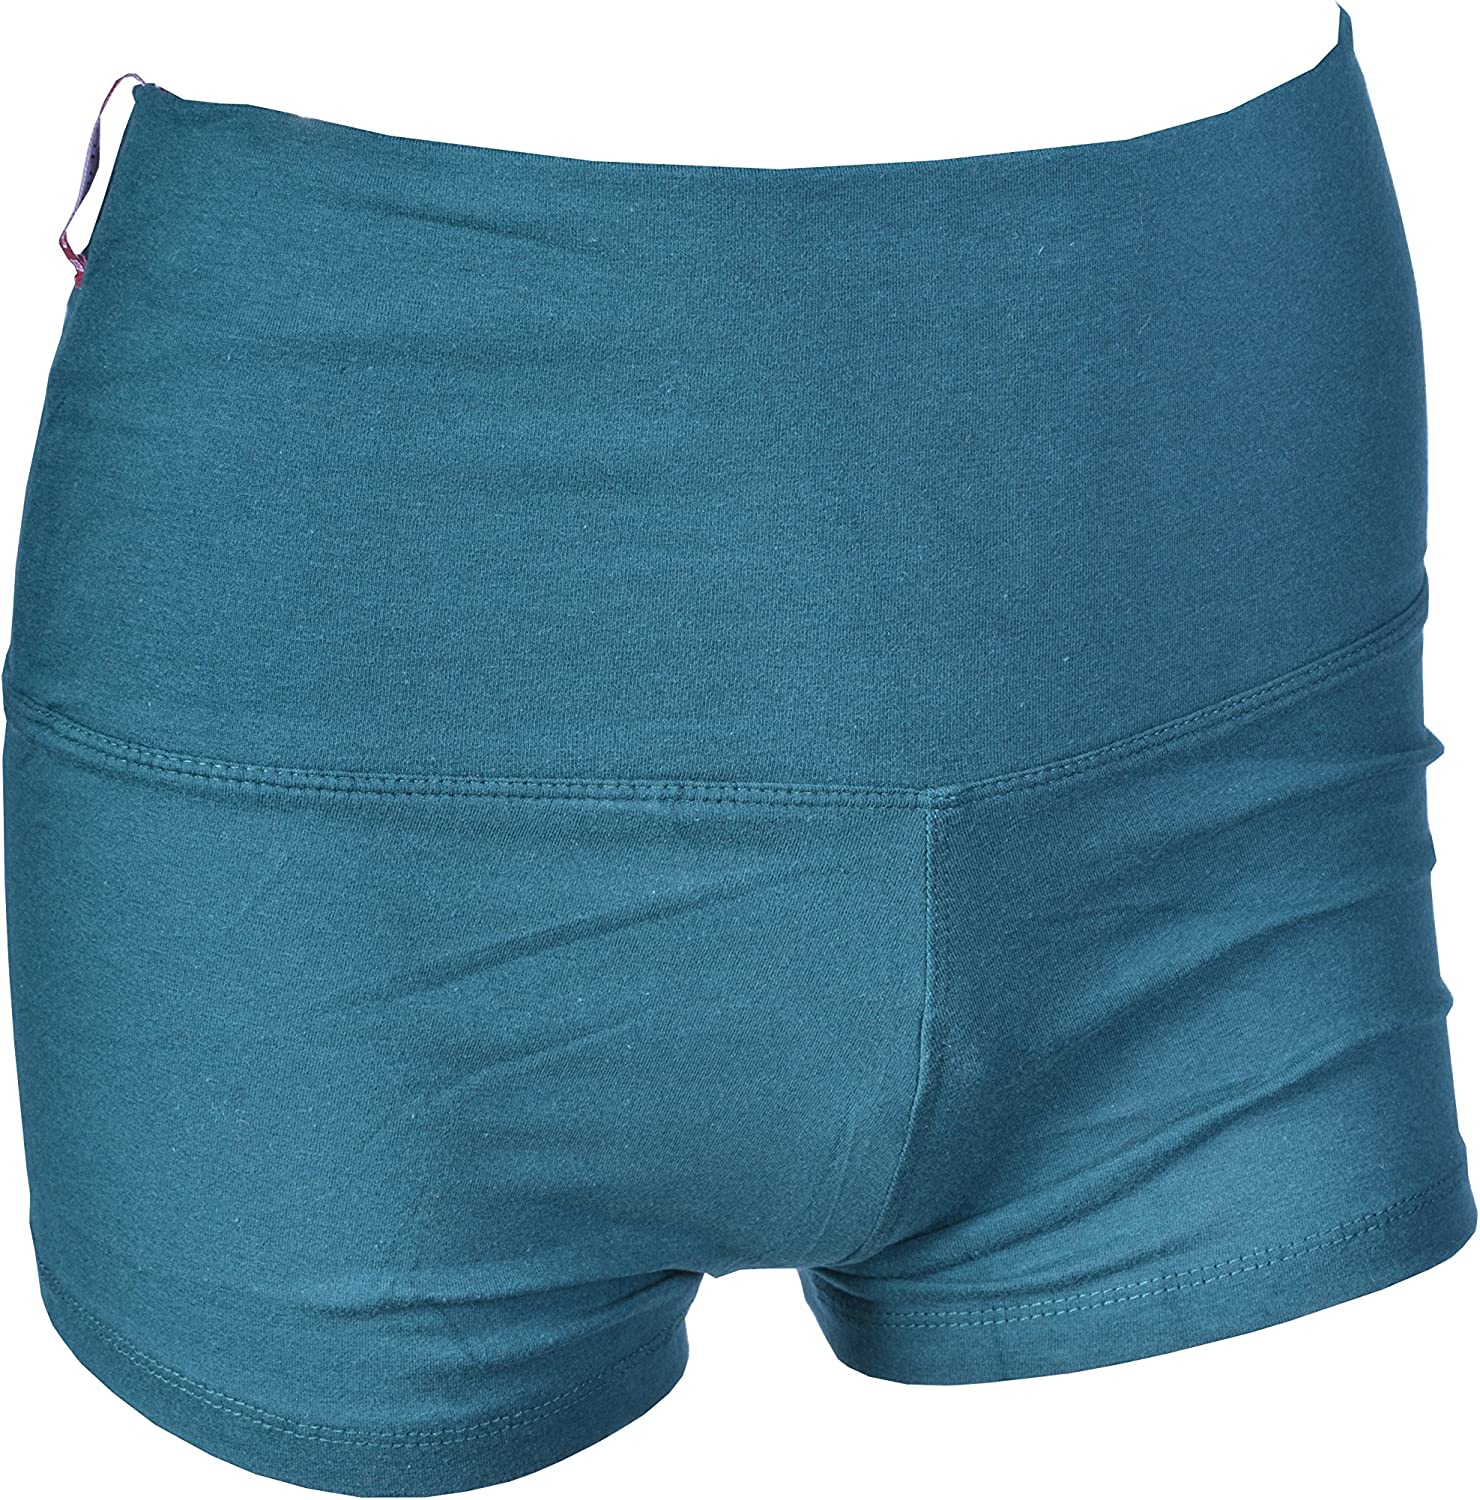 The Lovely TheLovely Foldover Casual Hot Mini Sweat Shorts